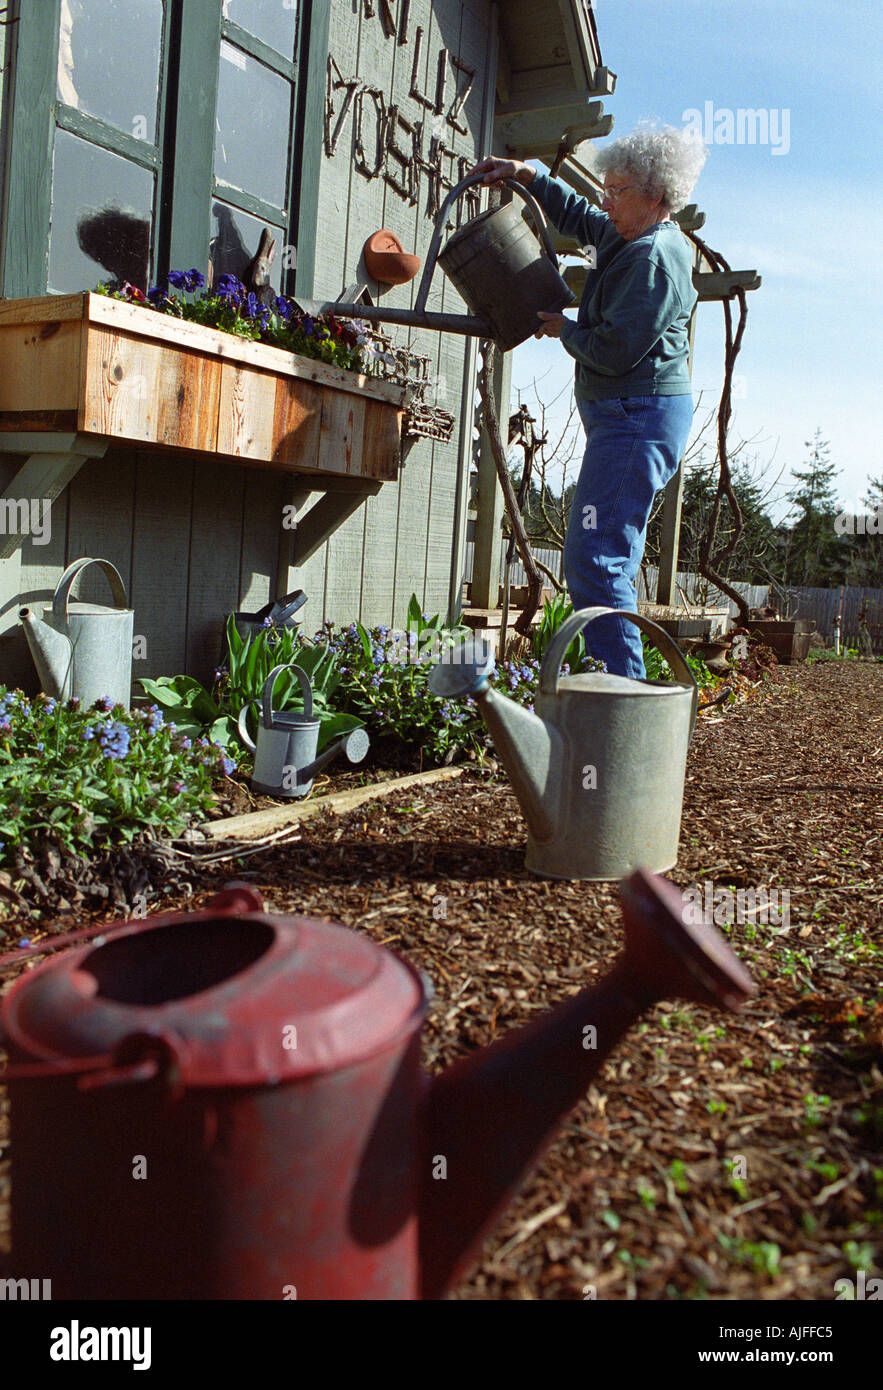 Senior woman watering flowers with watering can - Stock Image